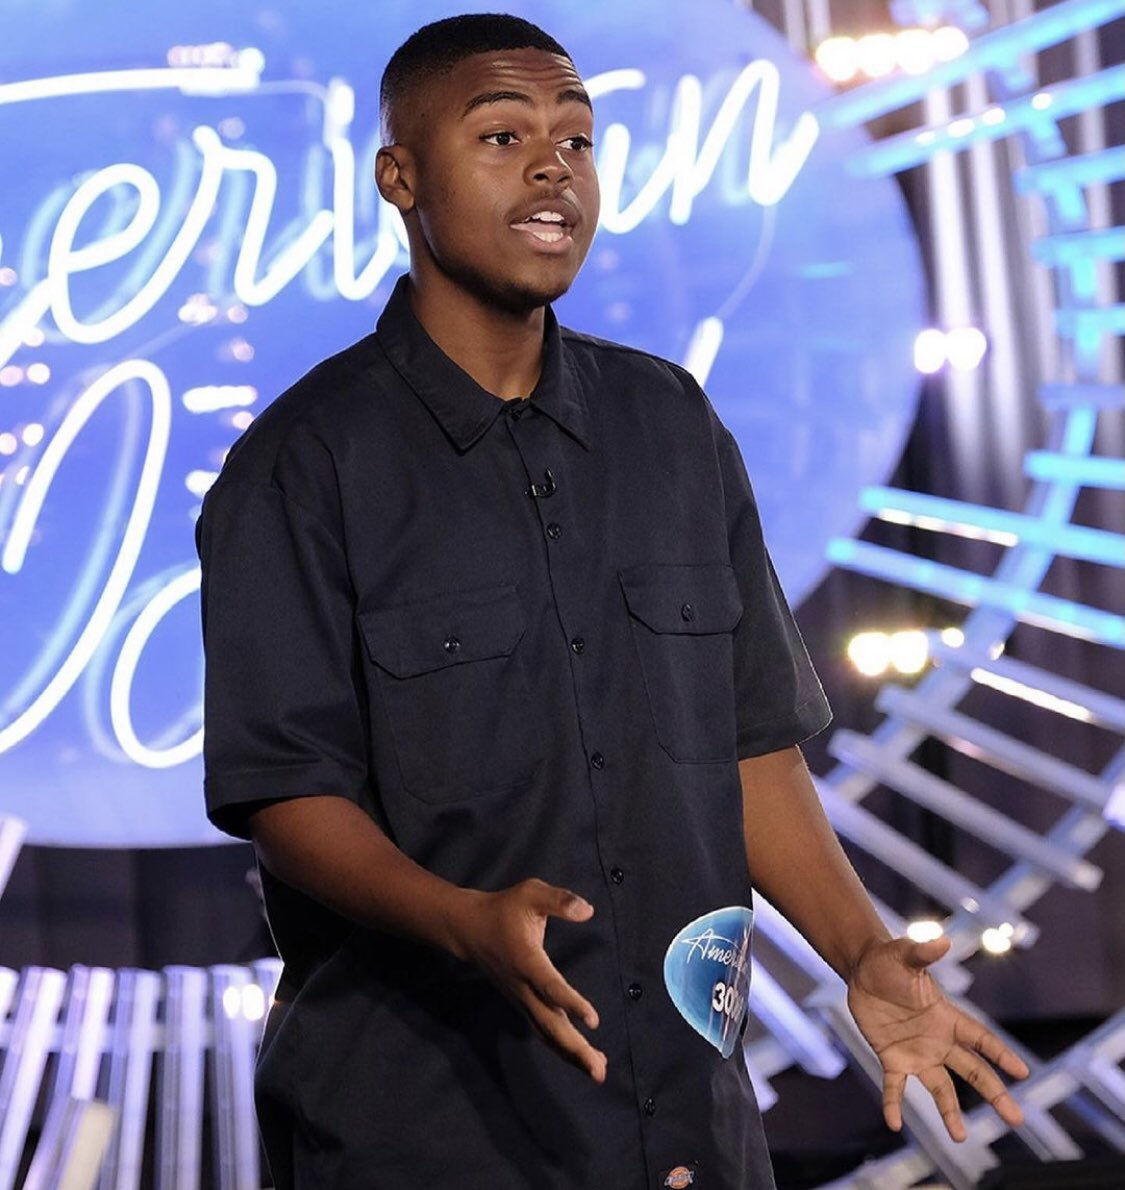 Great news! Michael's back on American Idol tonight to announce his new single!! #whyyoutextingme  @MichaelJWoodard  @AmericanIdol https://t.co/OgUdyDWEBY